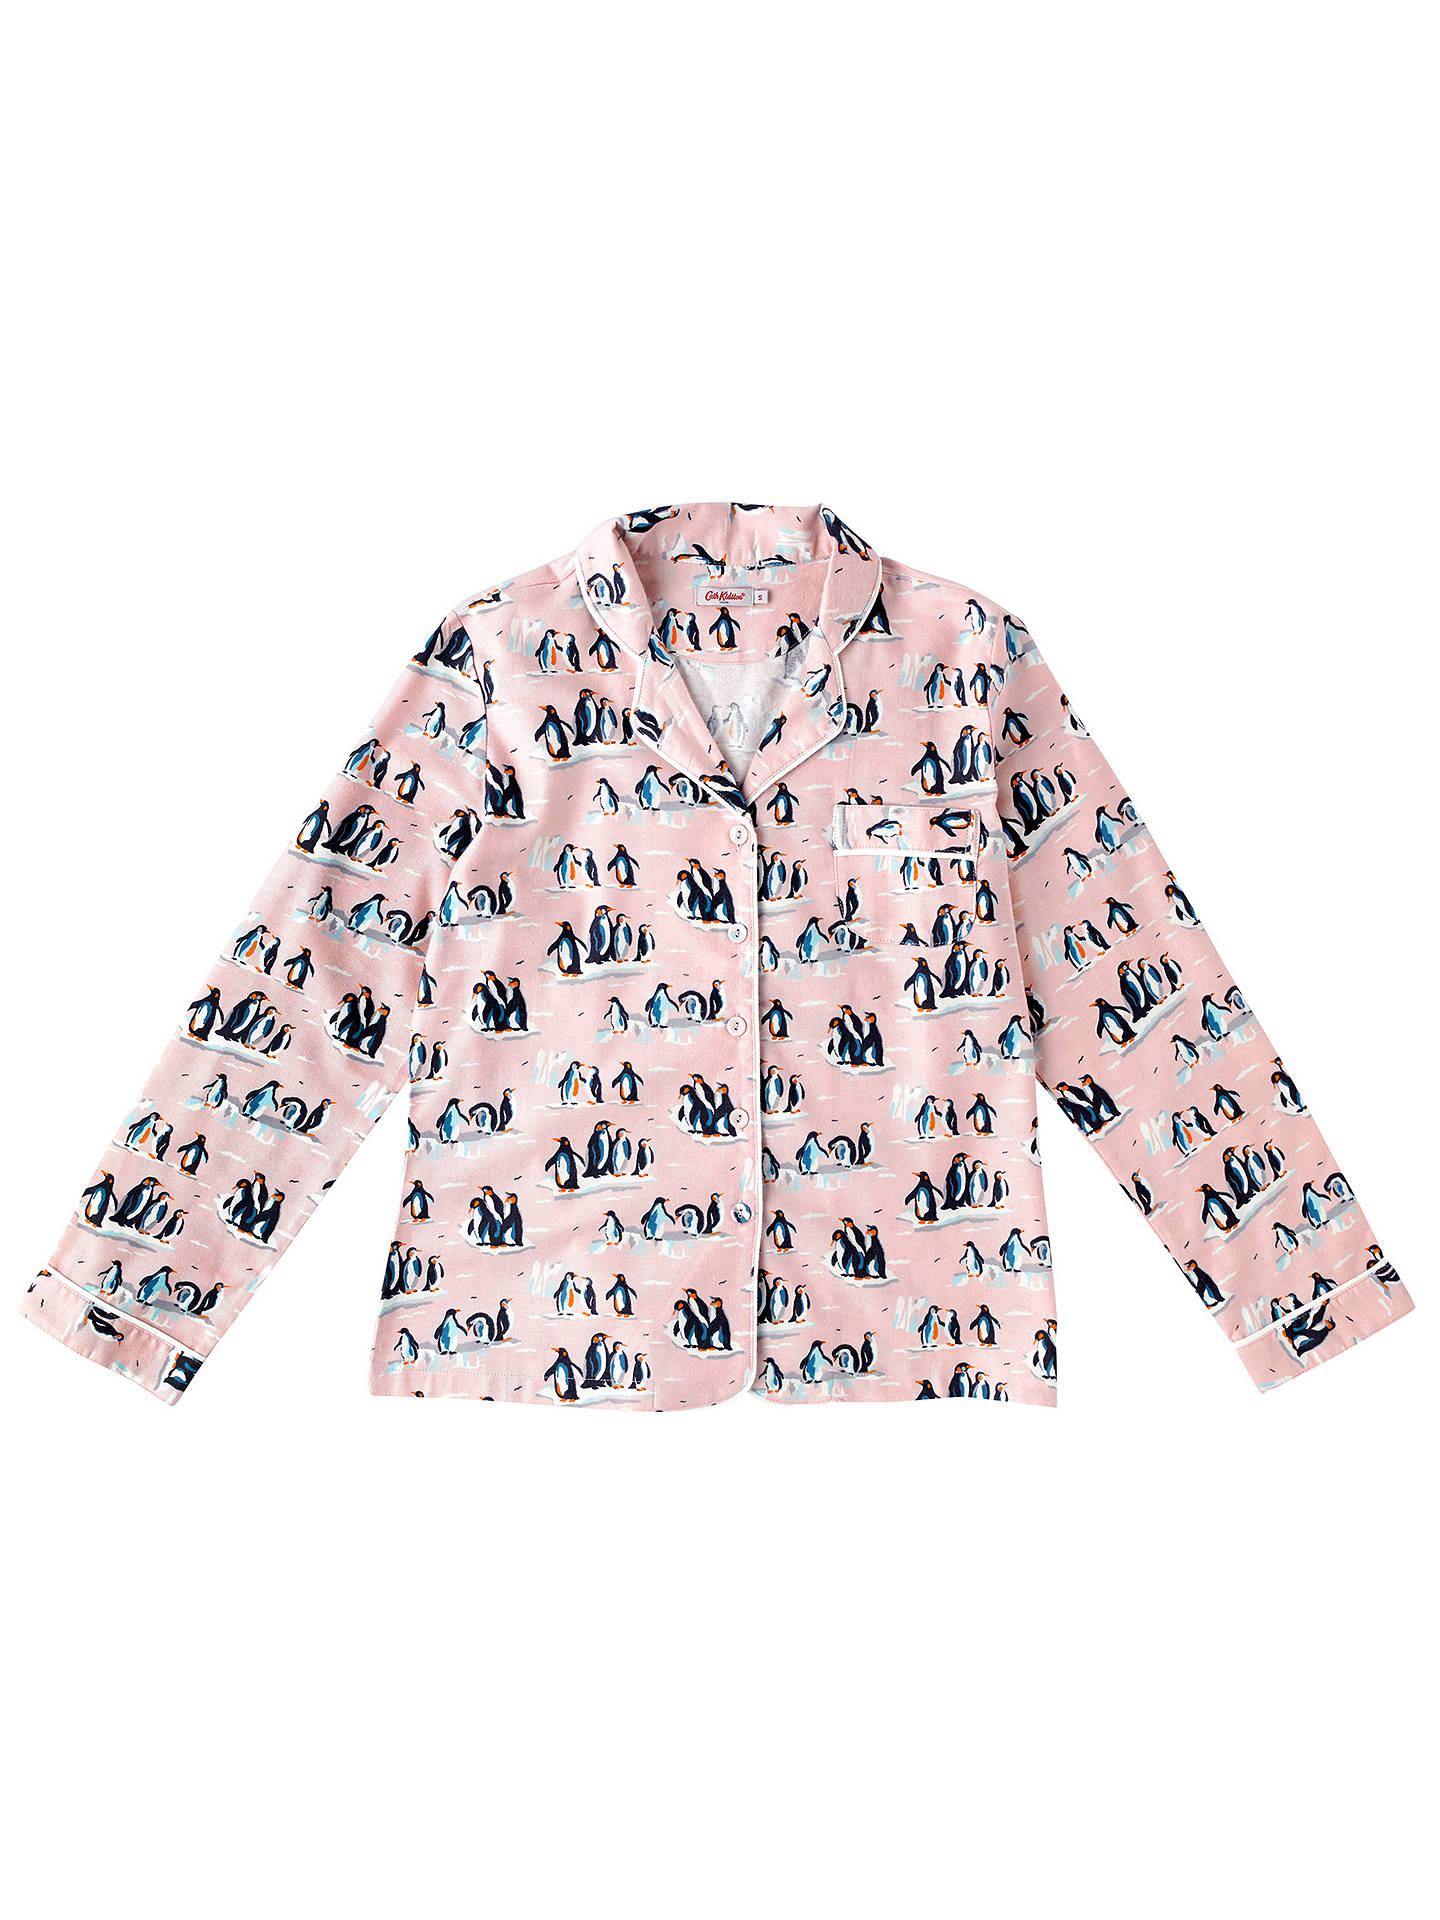 Buy Cath Kidston Penguin Pyjama Set, Pink, XS Online at johnlewis.com